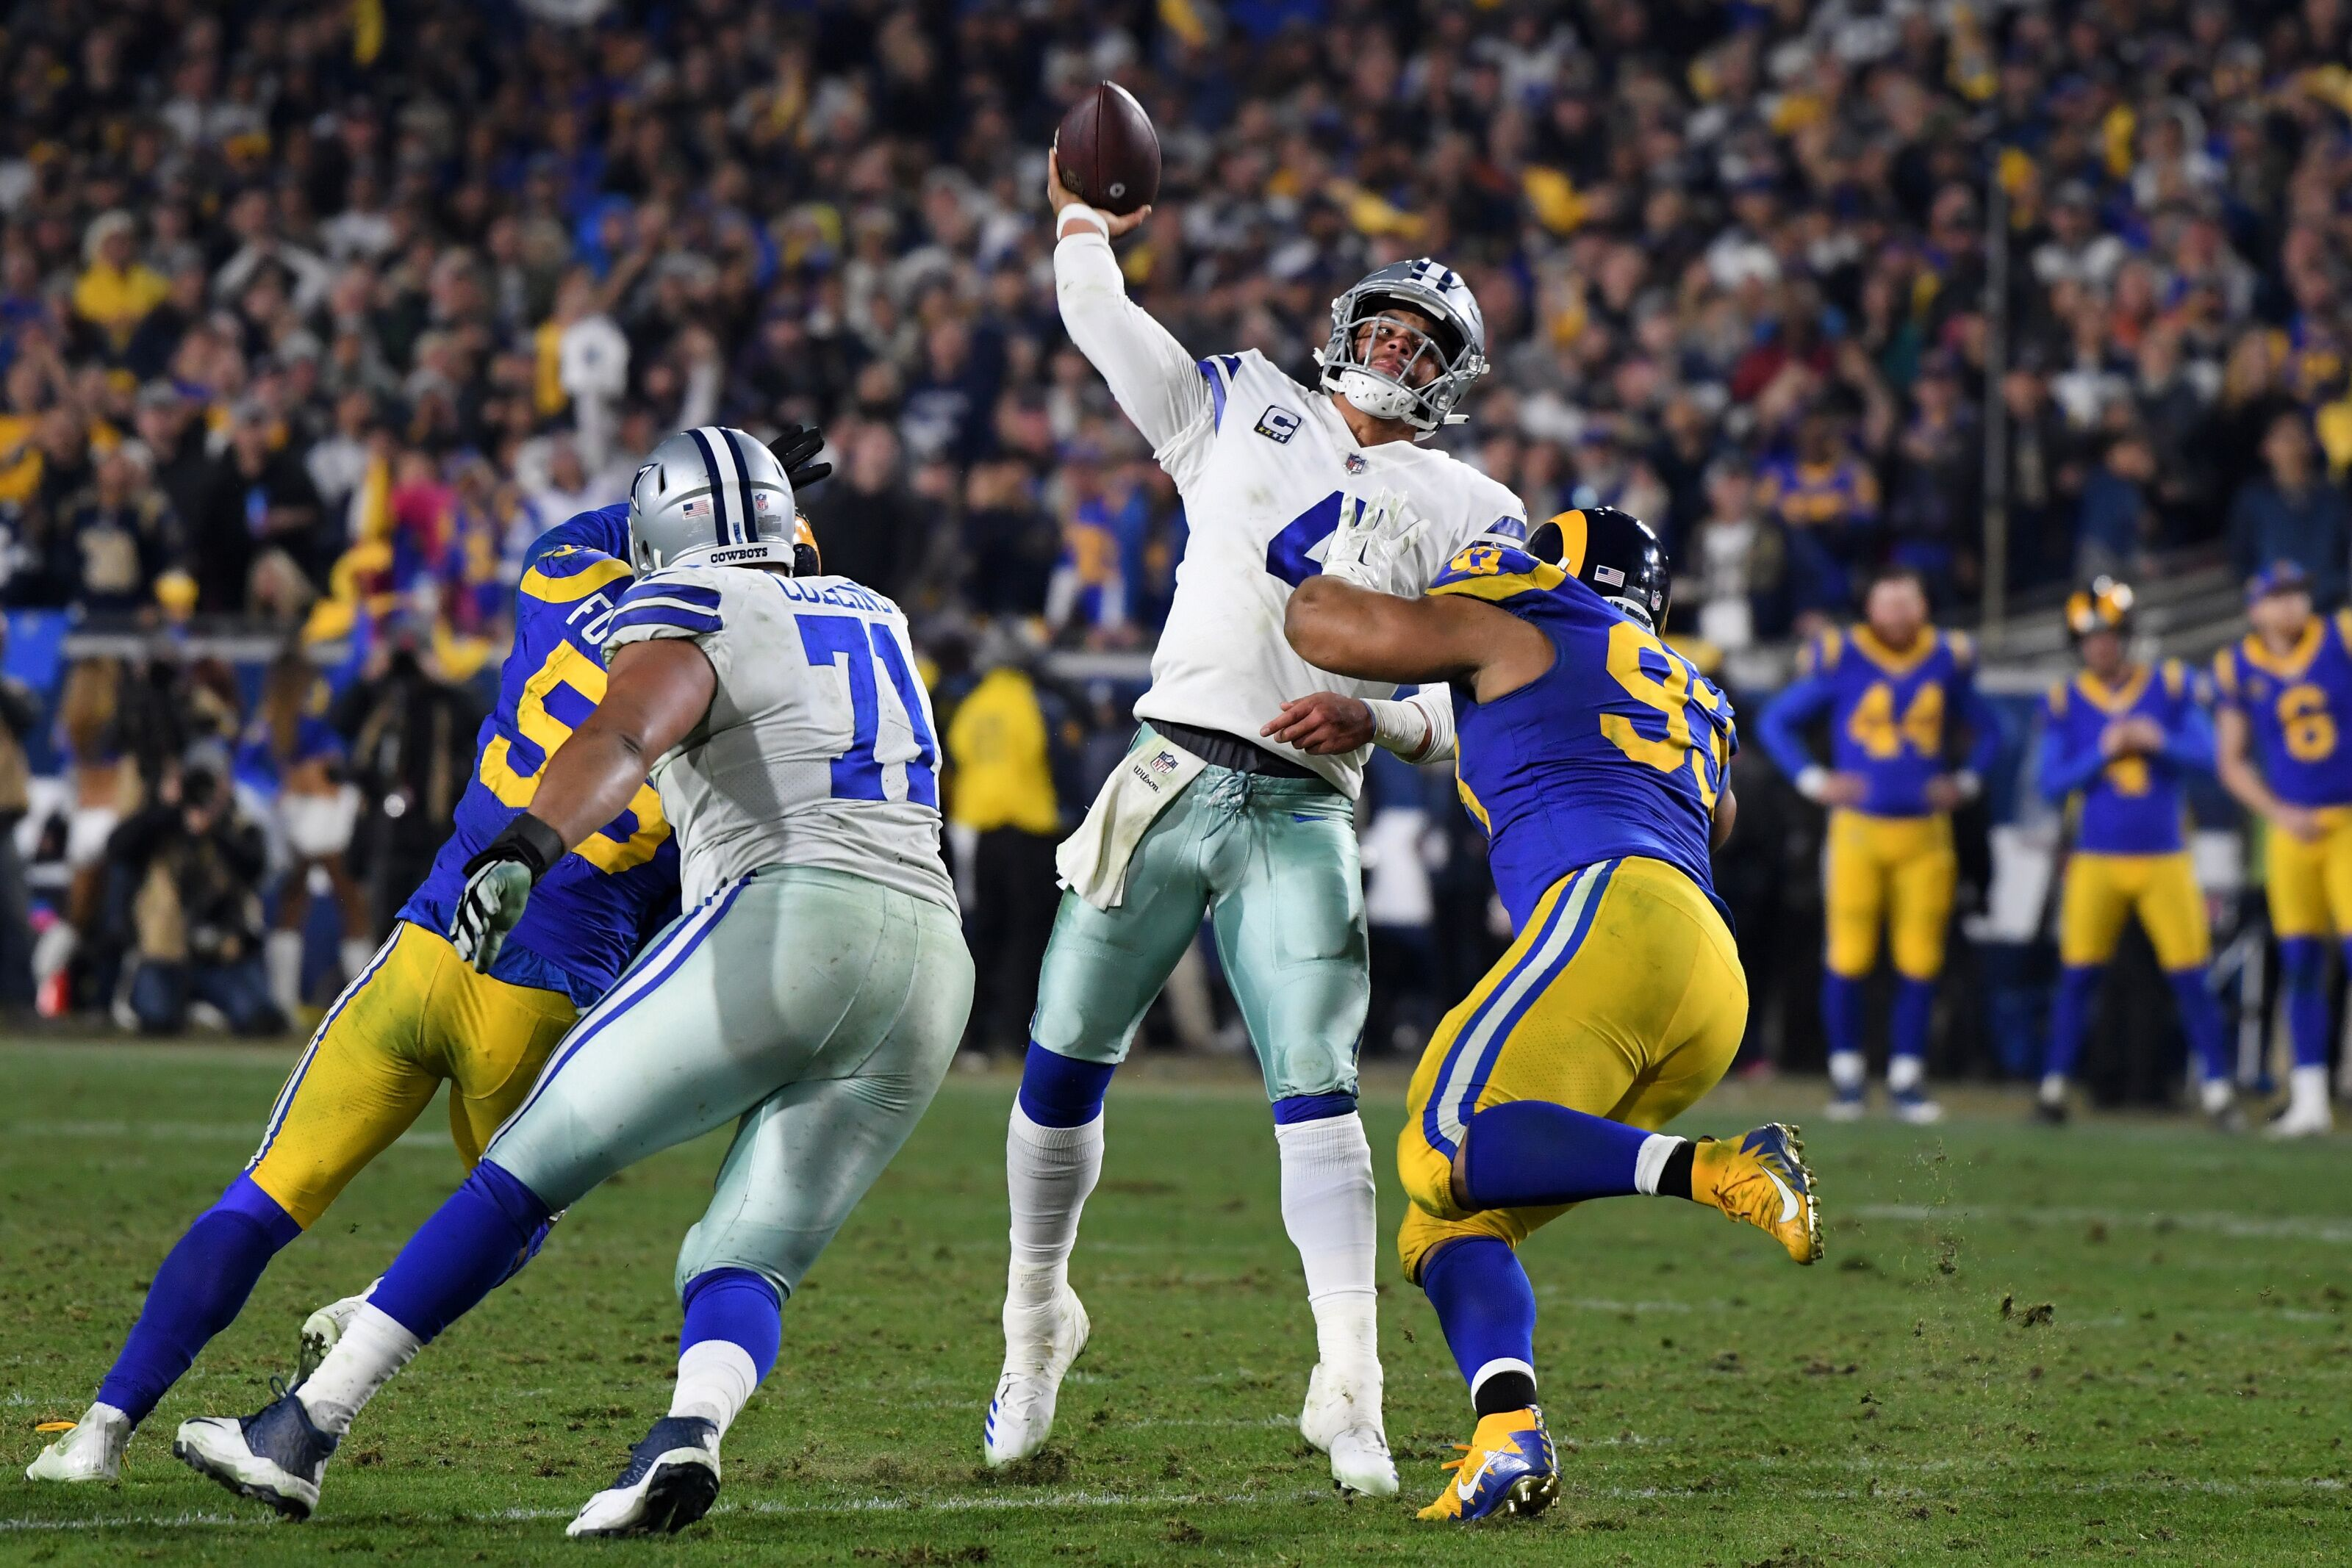 Do the Dallas Cowboys have a realistic shot at beating the Rams?